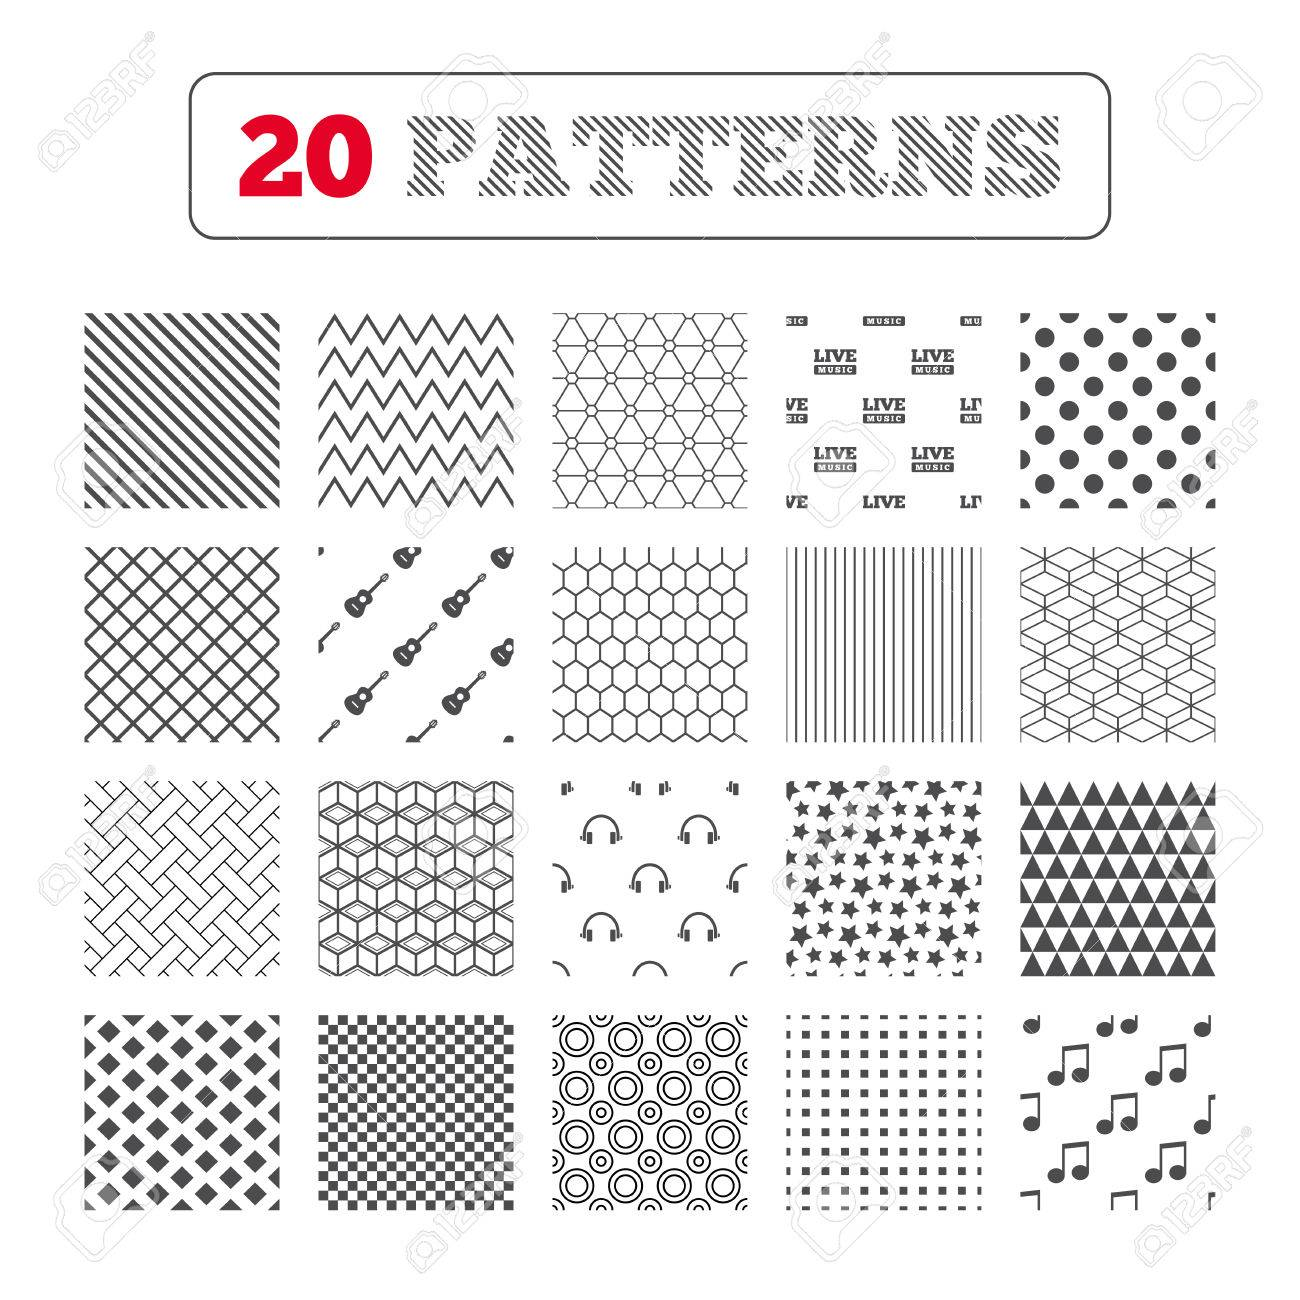 Ornament patterns diagonal stripes and stars musical elements ornament patterns diagonal stripes and stars musical elements icons musical note key and biocorpaavc Gallery